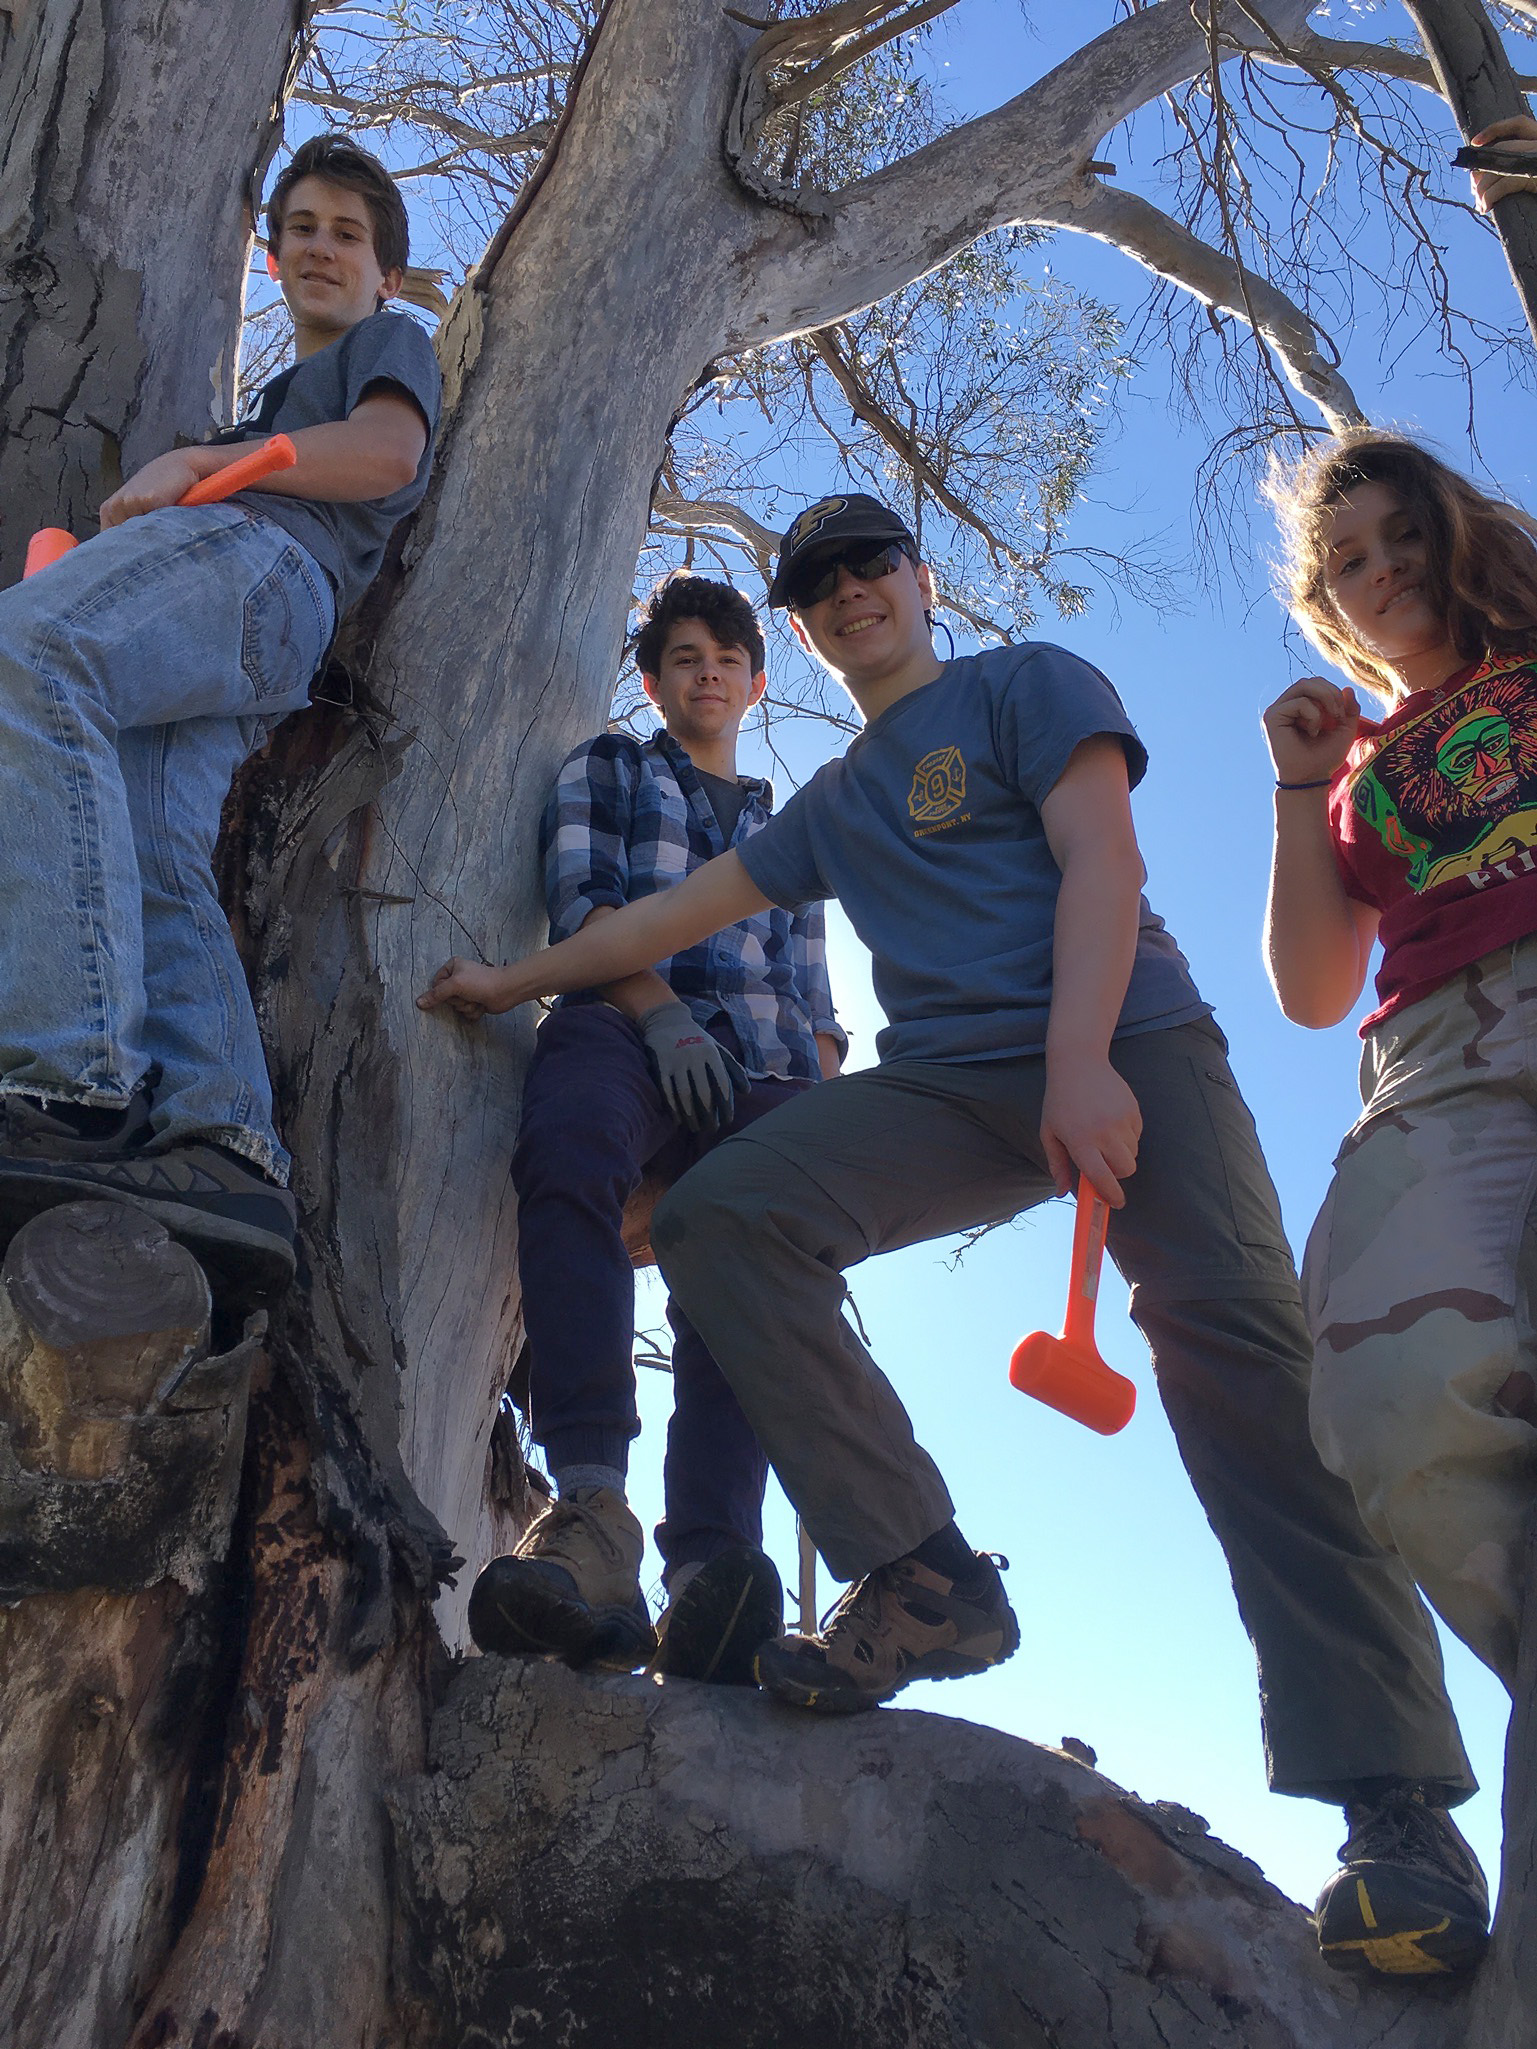 """The """"Mulefat Chain Gang"""" earned their name by planting 300 pole cuttings in a single day!"""